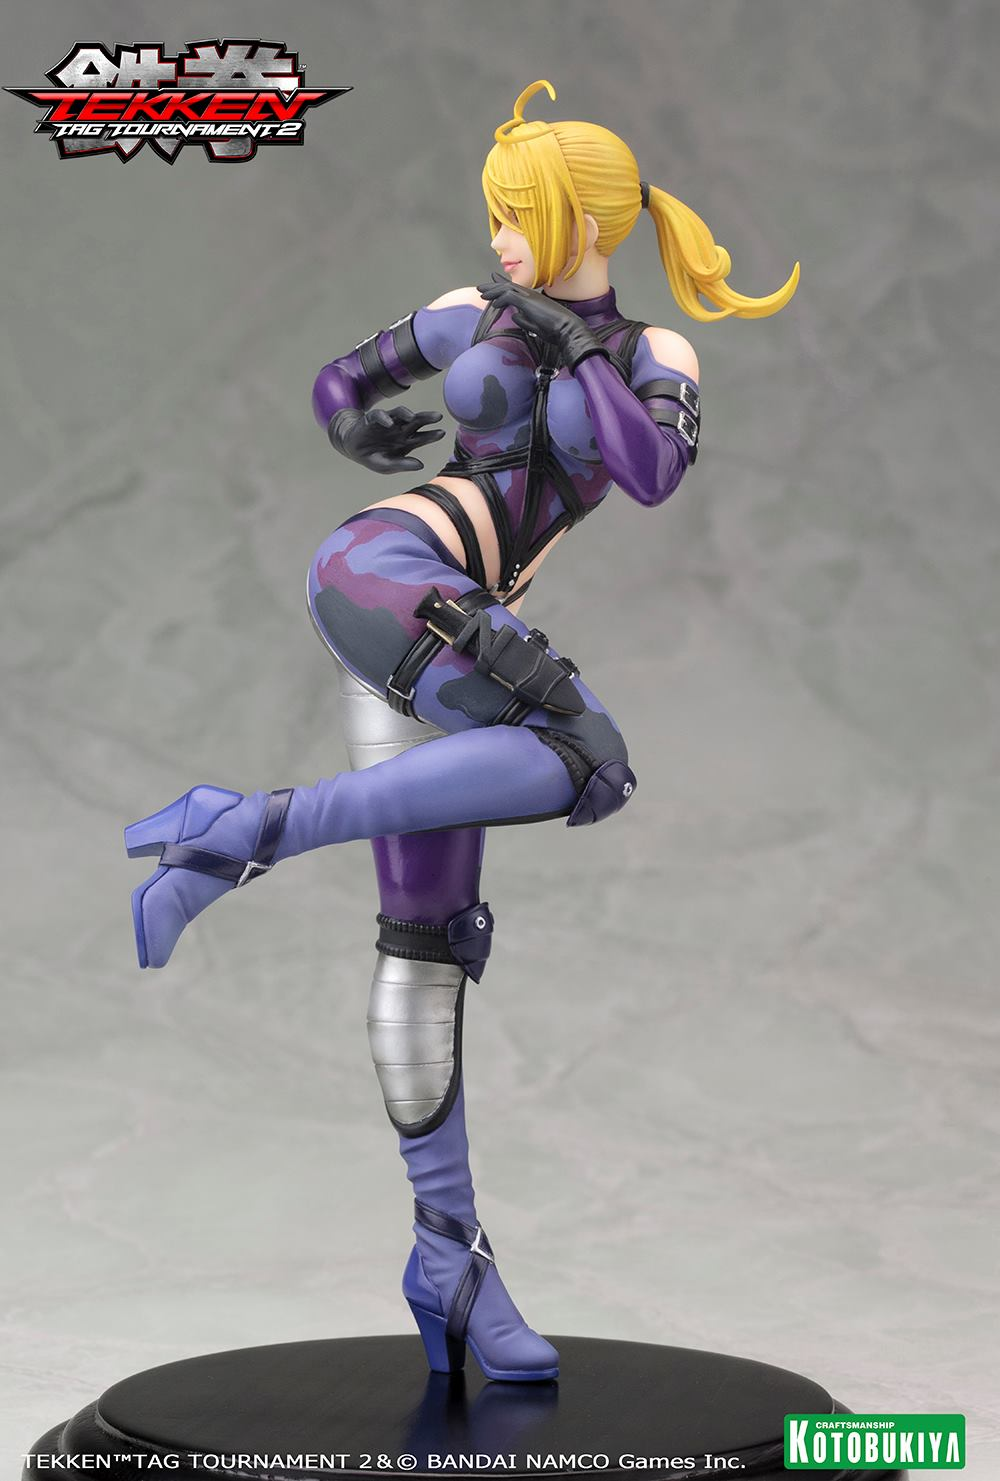 nina-williams-tekken-tournament-2-bishoujo-statue-4